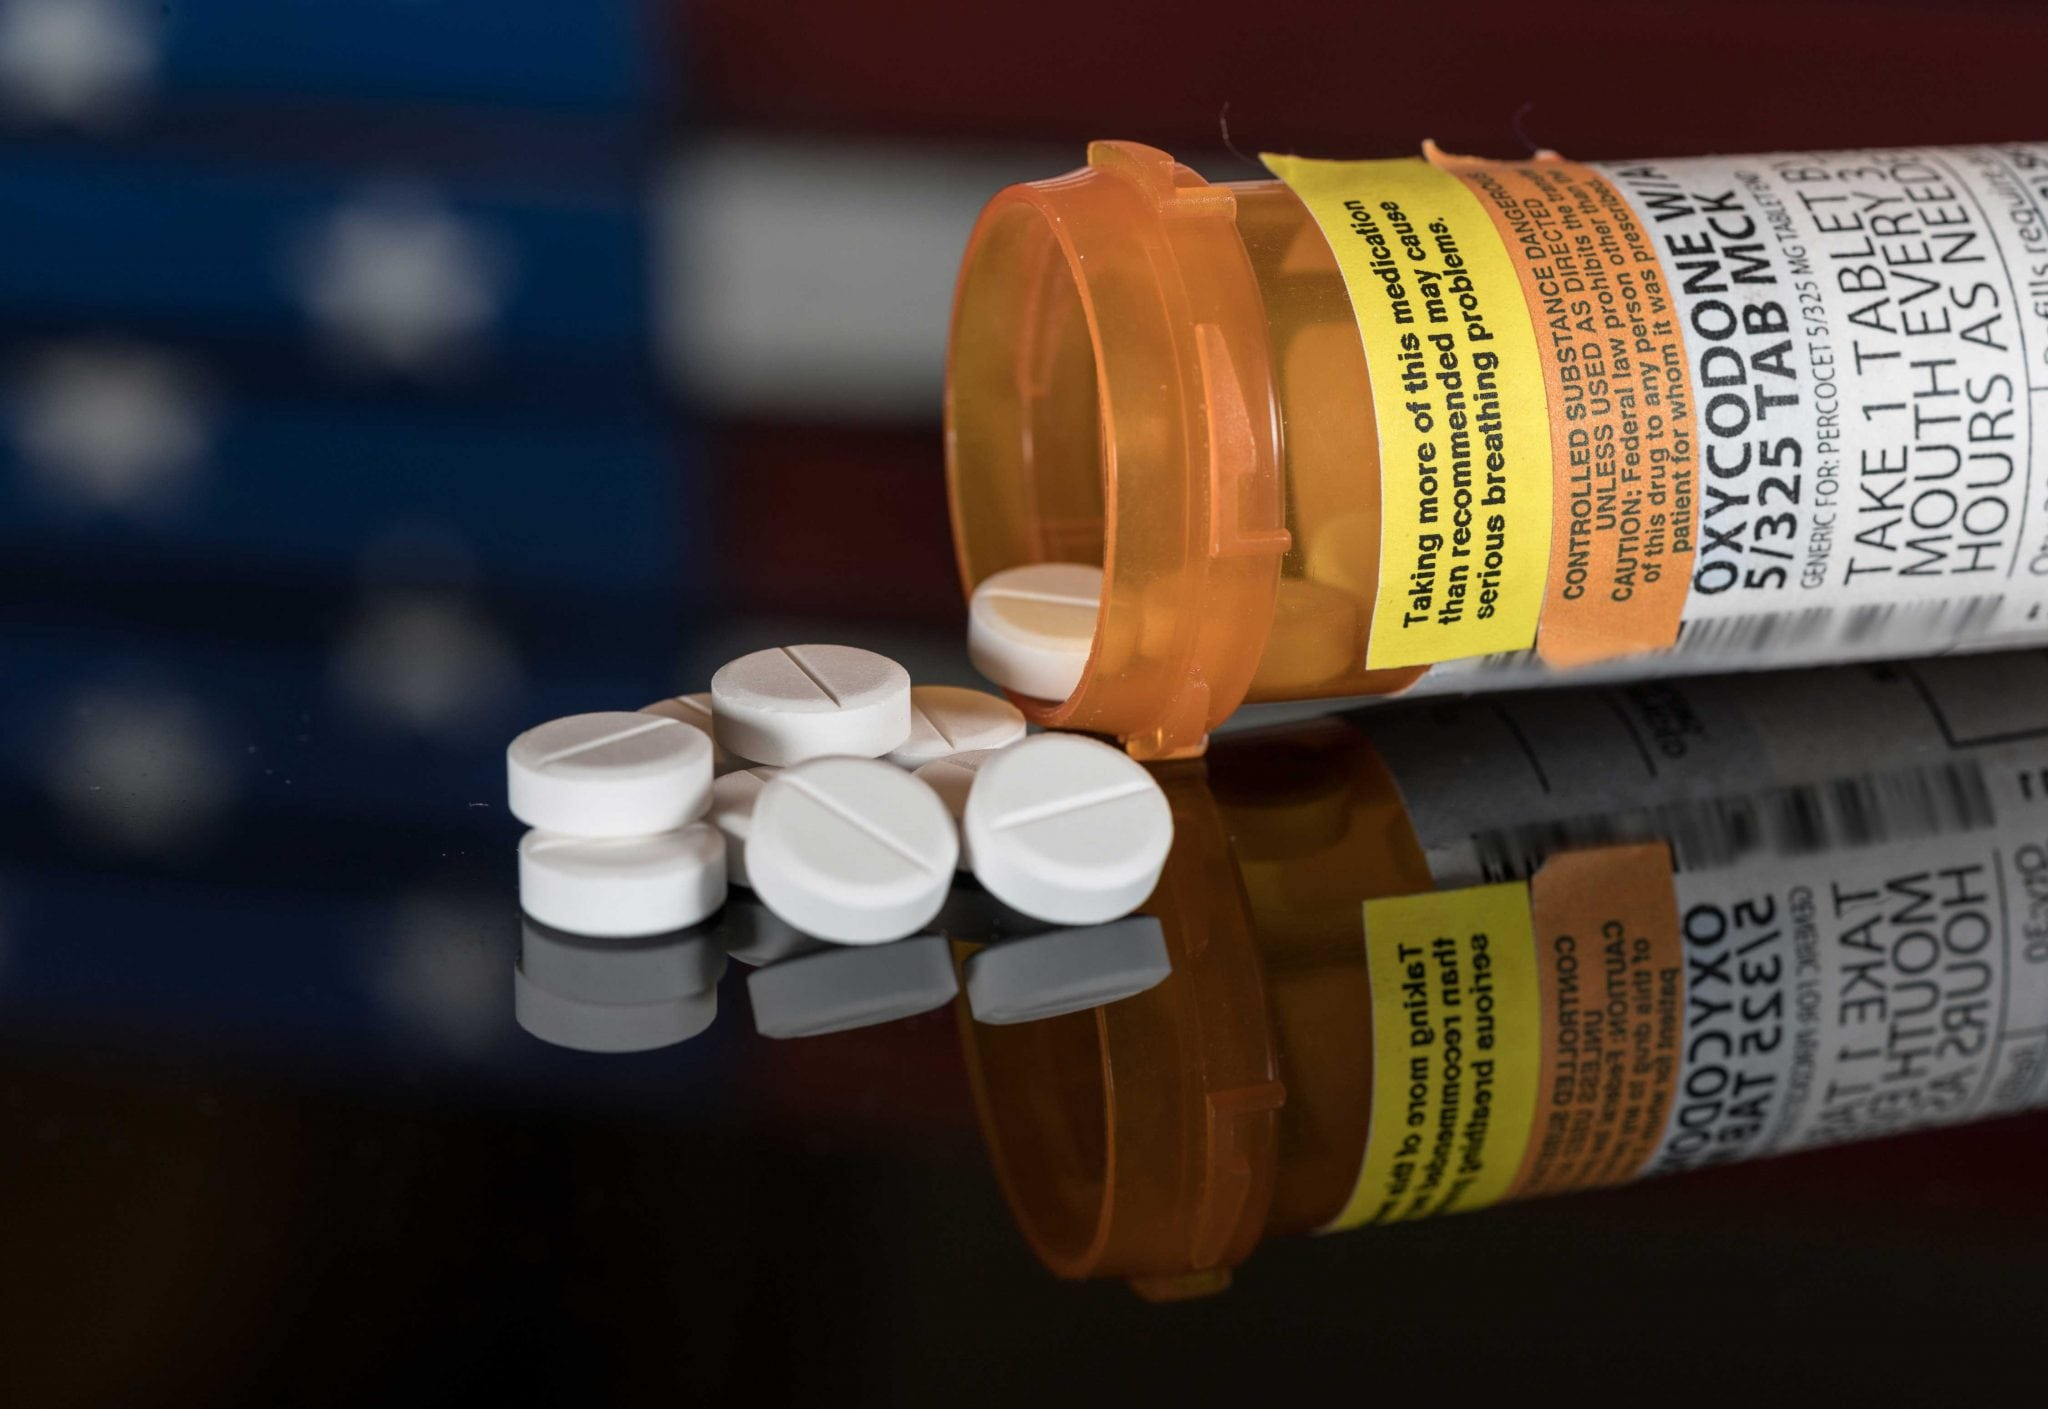 State's $300 Million Share of Opioid Settlement 'A Great Boost' to Fight Crisis